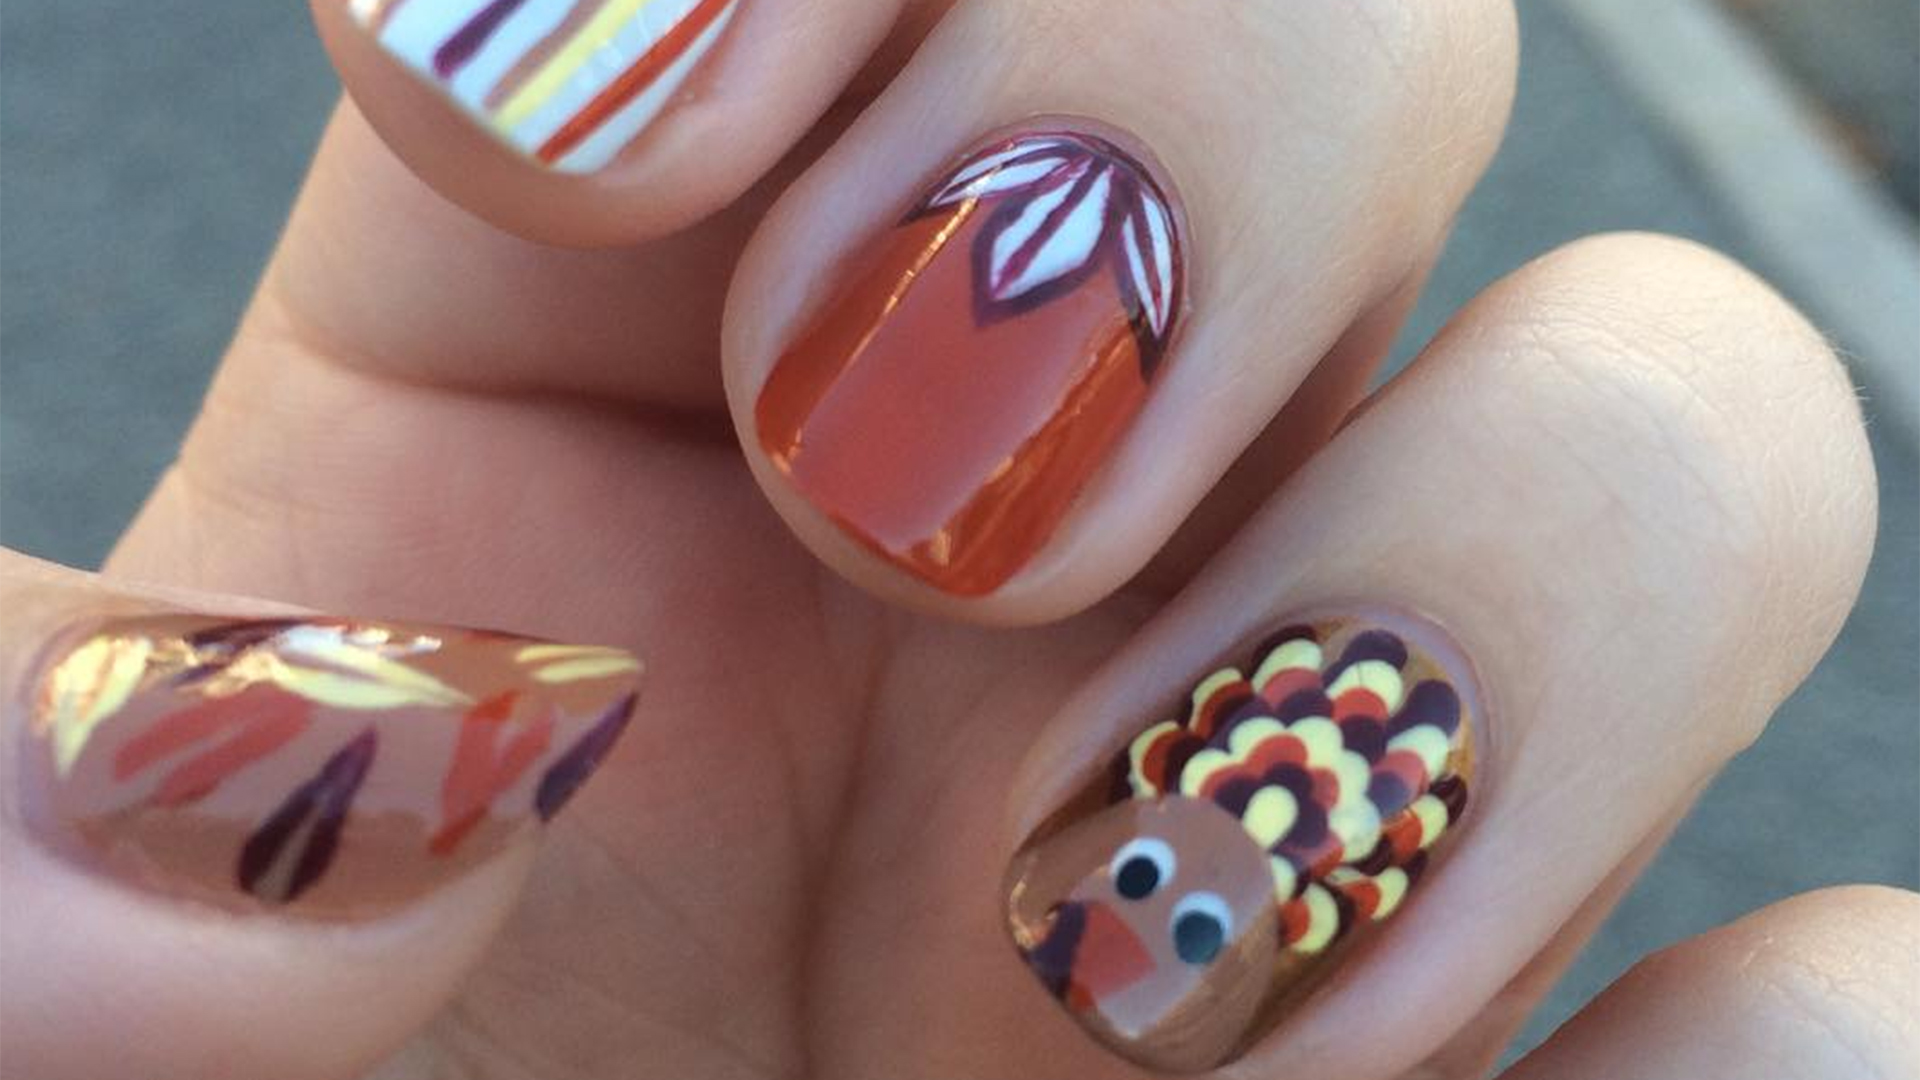 Fabulous Nails Blandford Street Thanksgiving Nails Instagram Cabbeffabdeabbad